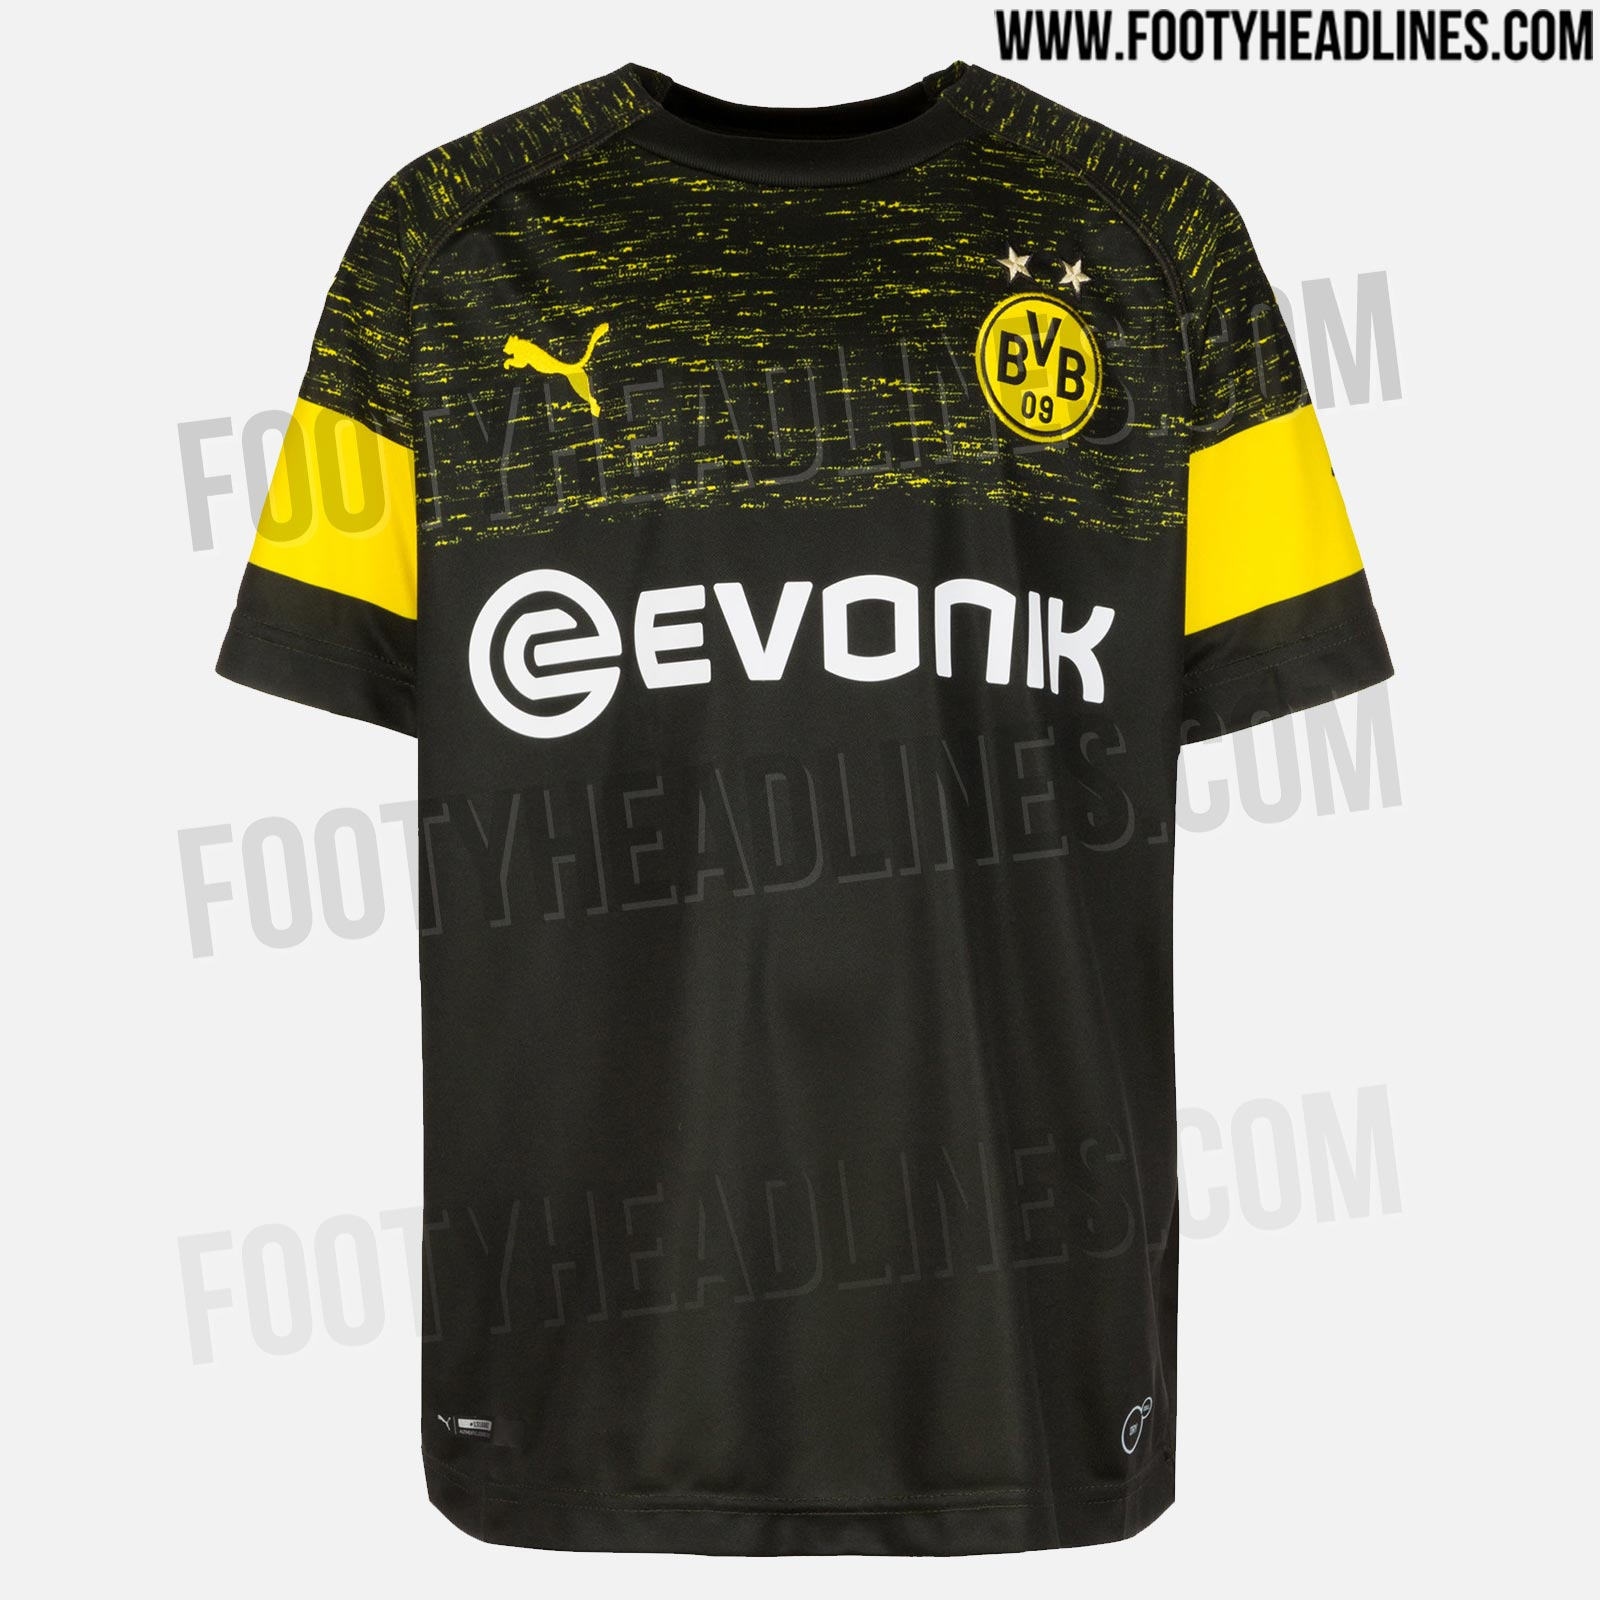 Images showing the new Borussia Dortmund away kit have been leaked ... 899341f58